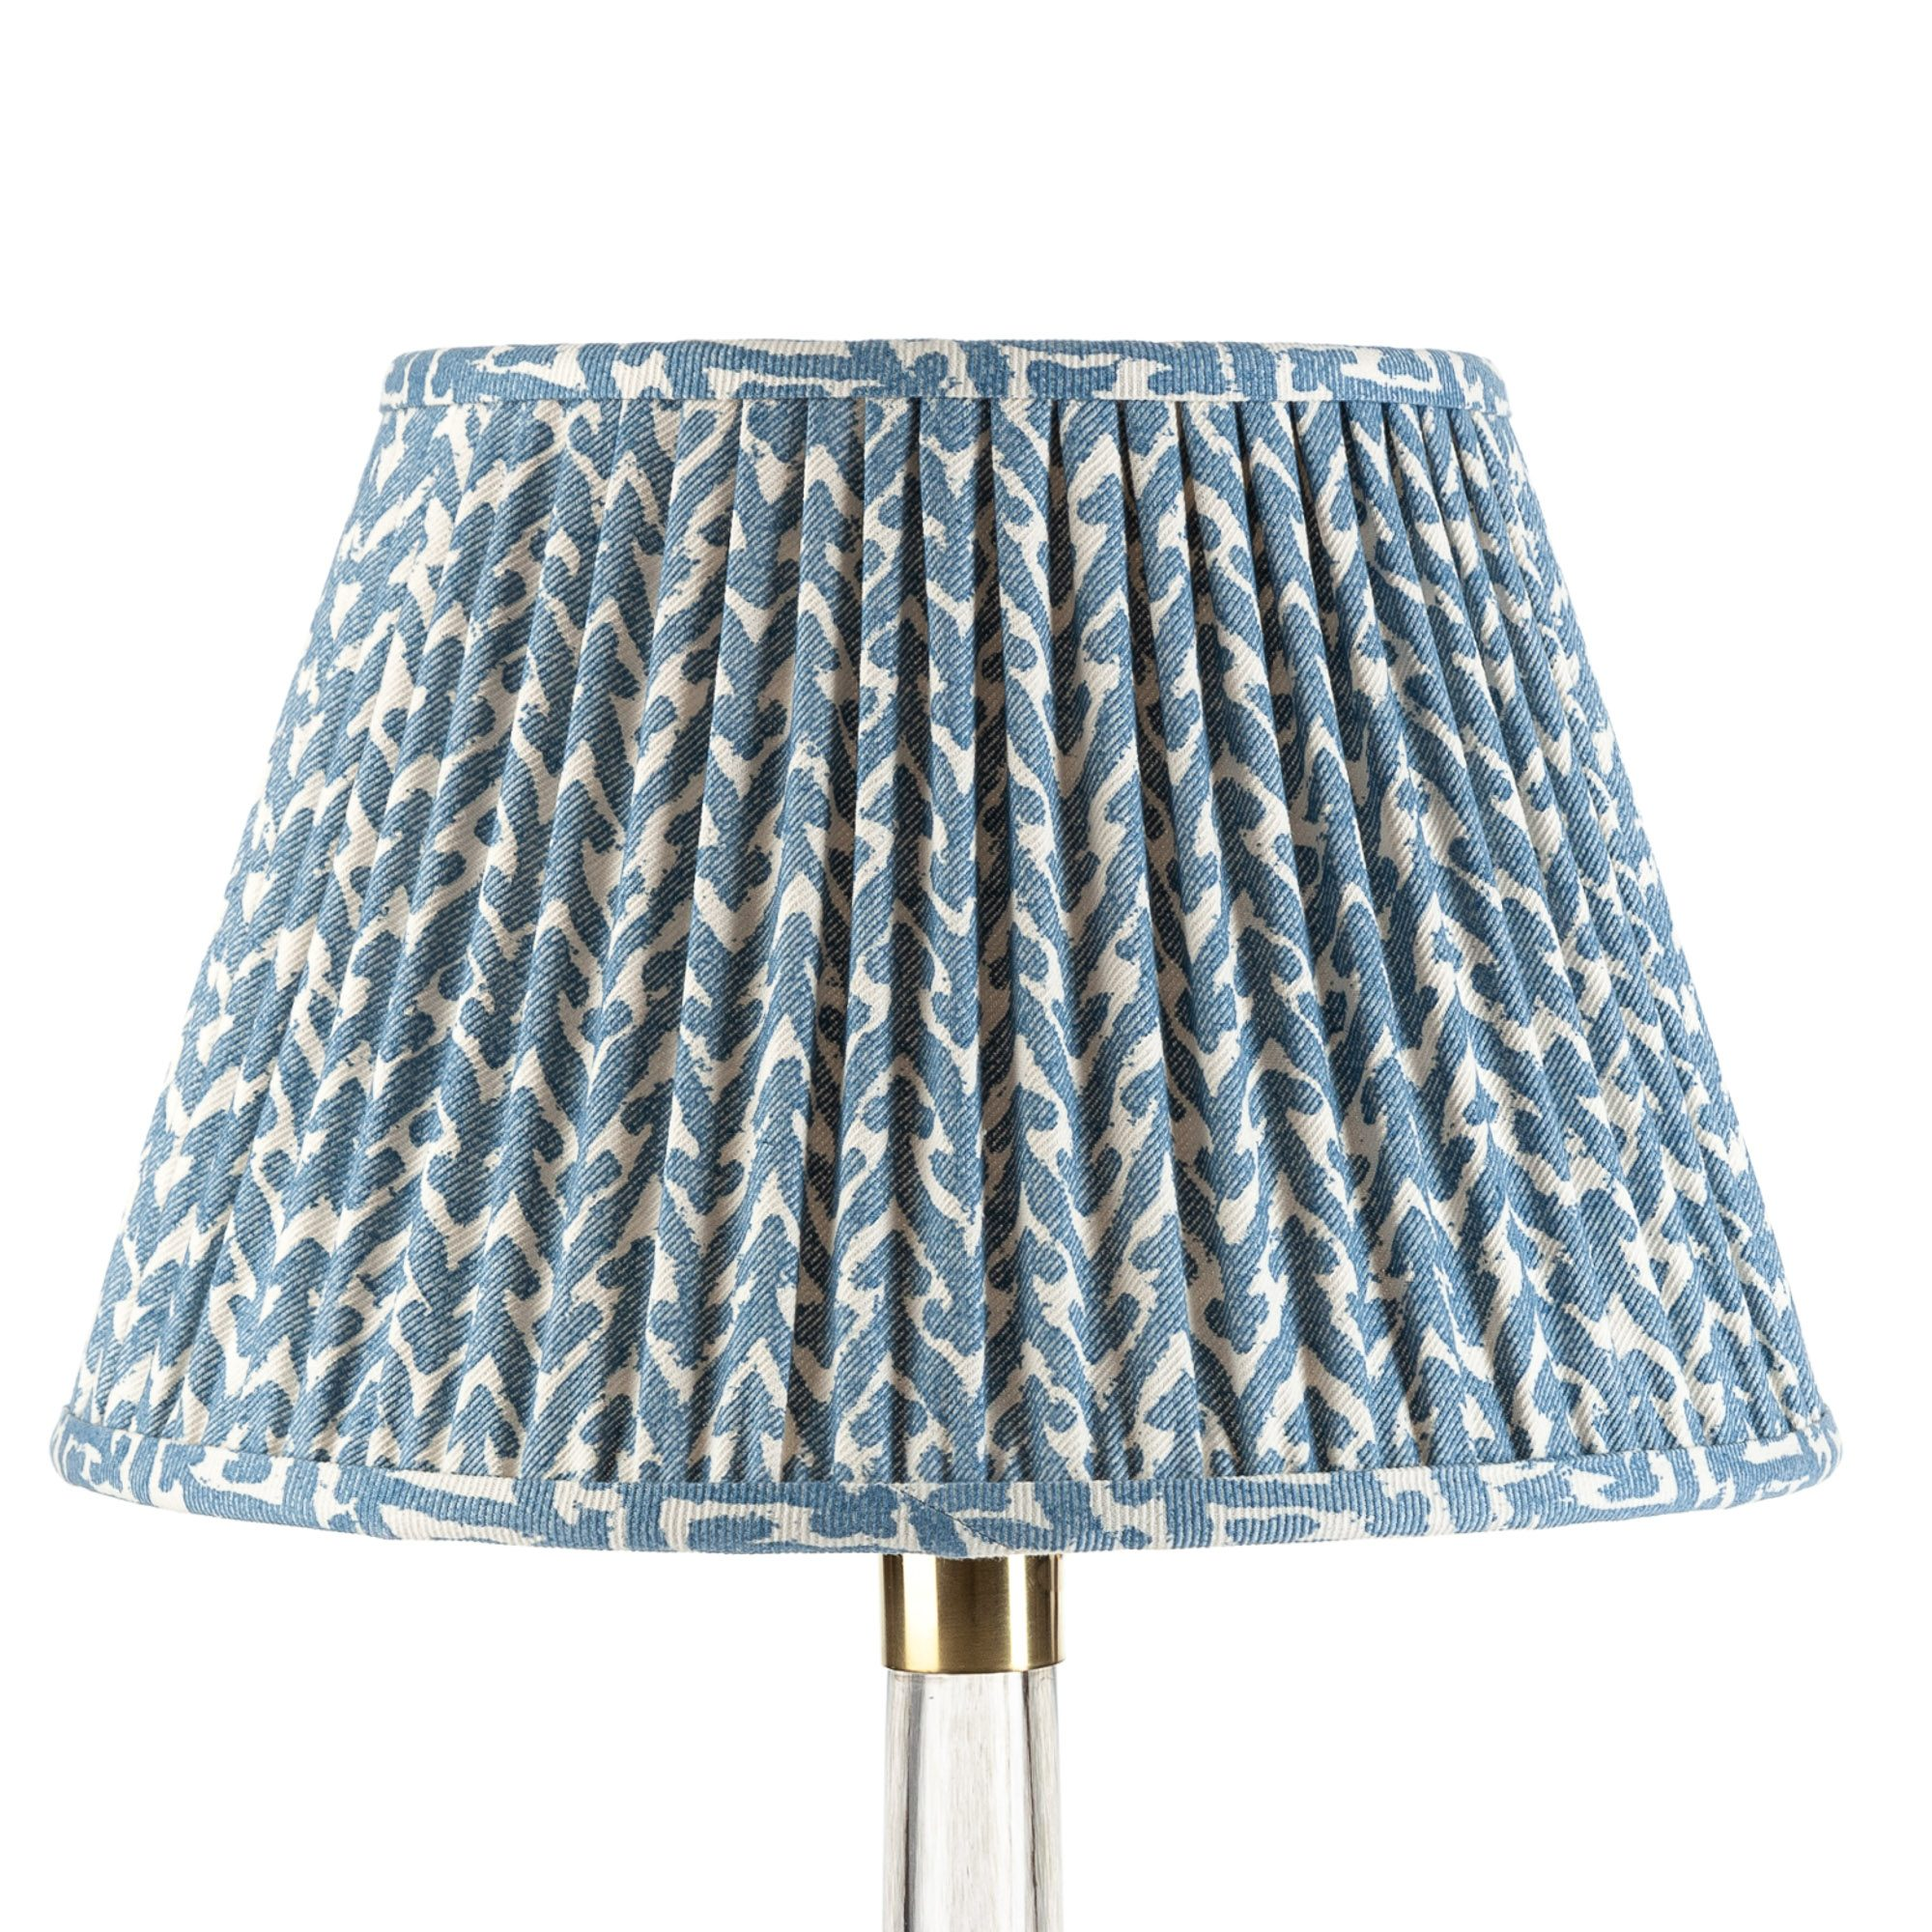 pg-010-empire-gathered-lampshade-in-blue-rabanna-010-1